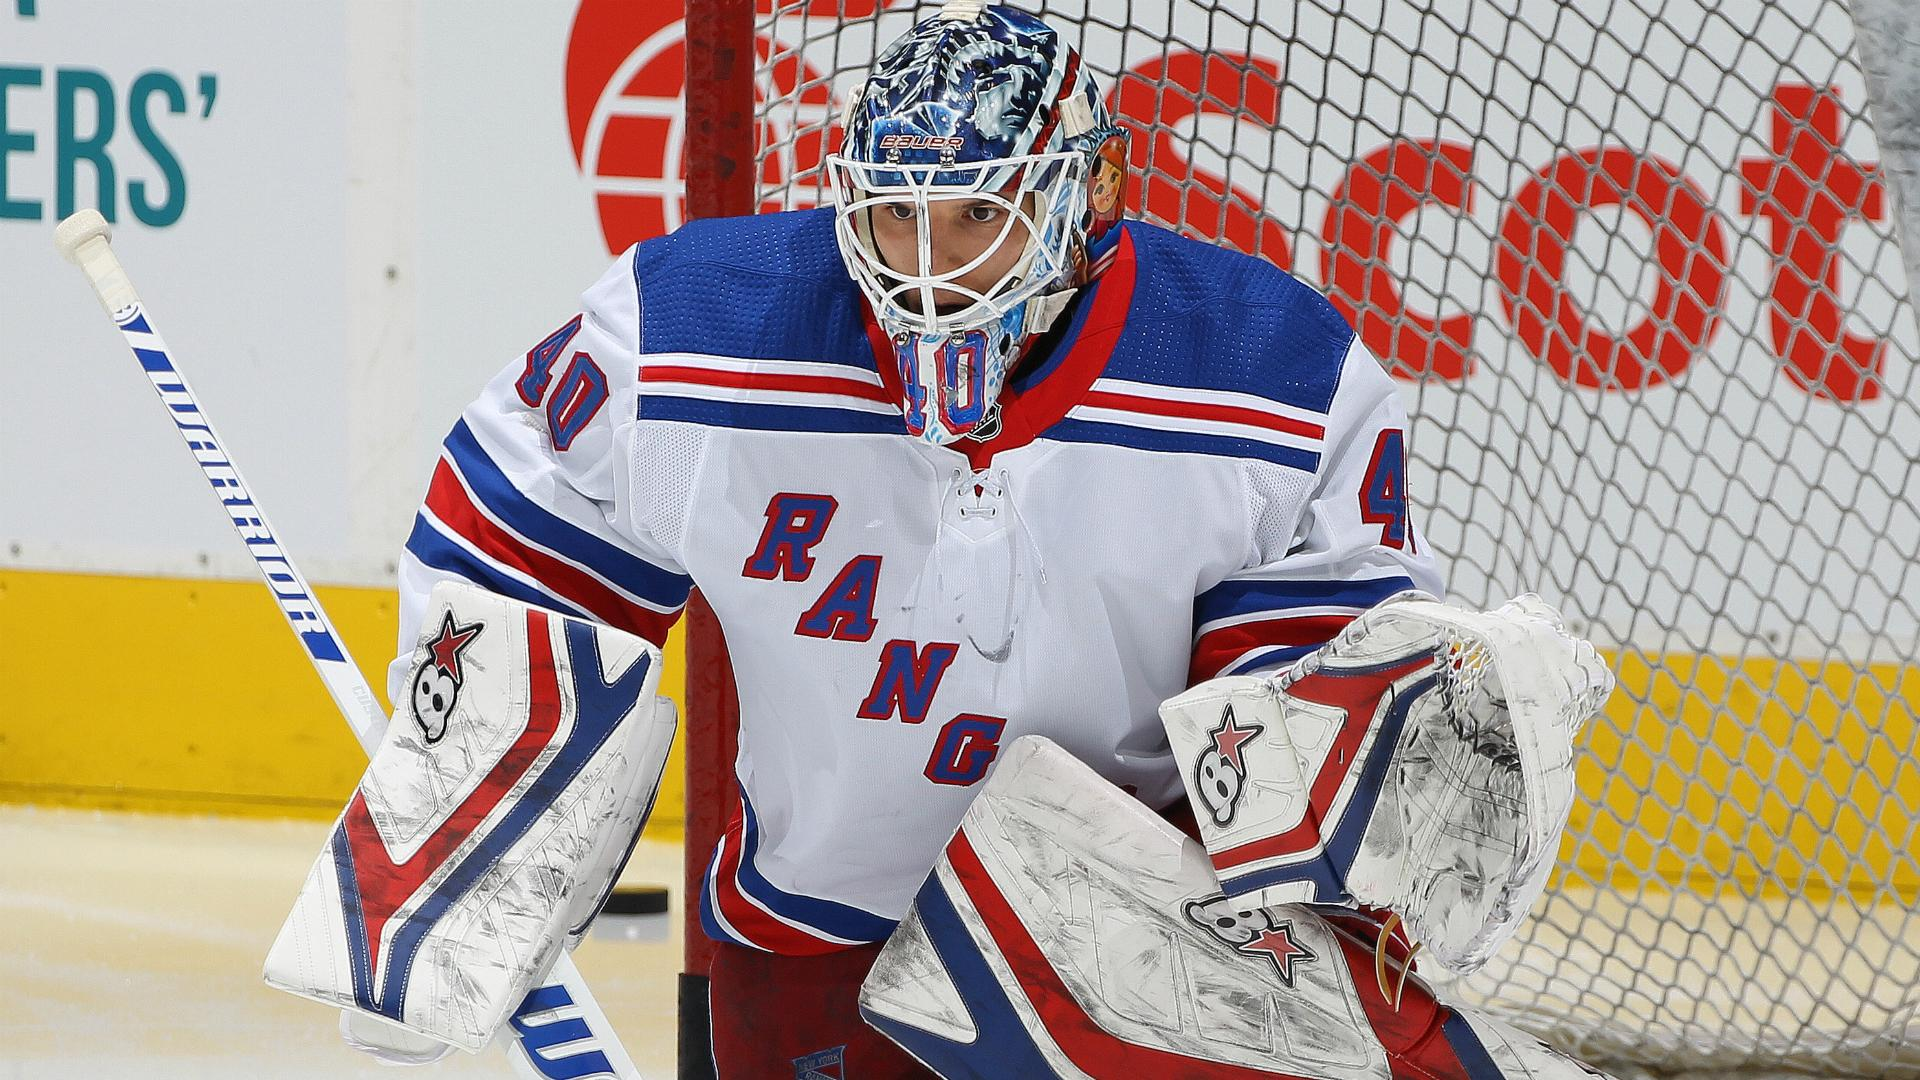 Nhl Trade Rumors 2020 Toronto Maple Leafs Have Reportedly Inquired About New York Rangers Goaltender Alexandar Georgiev